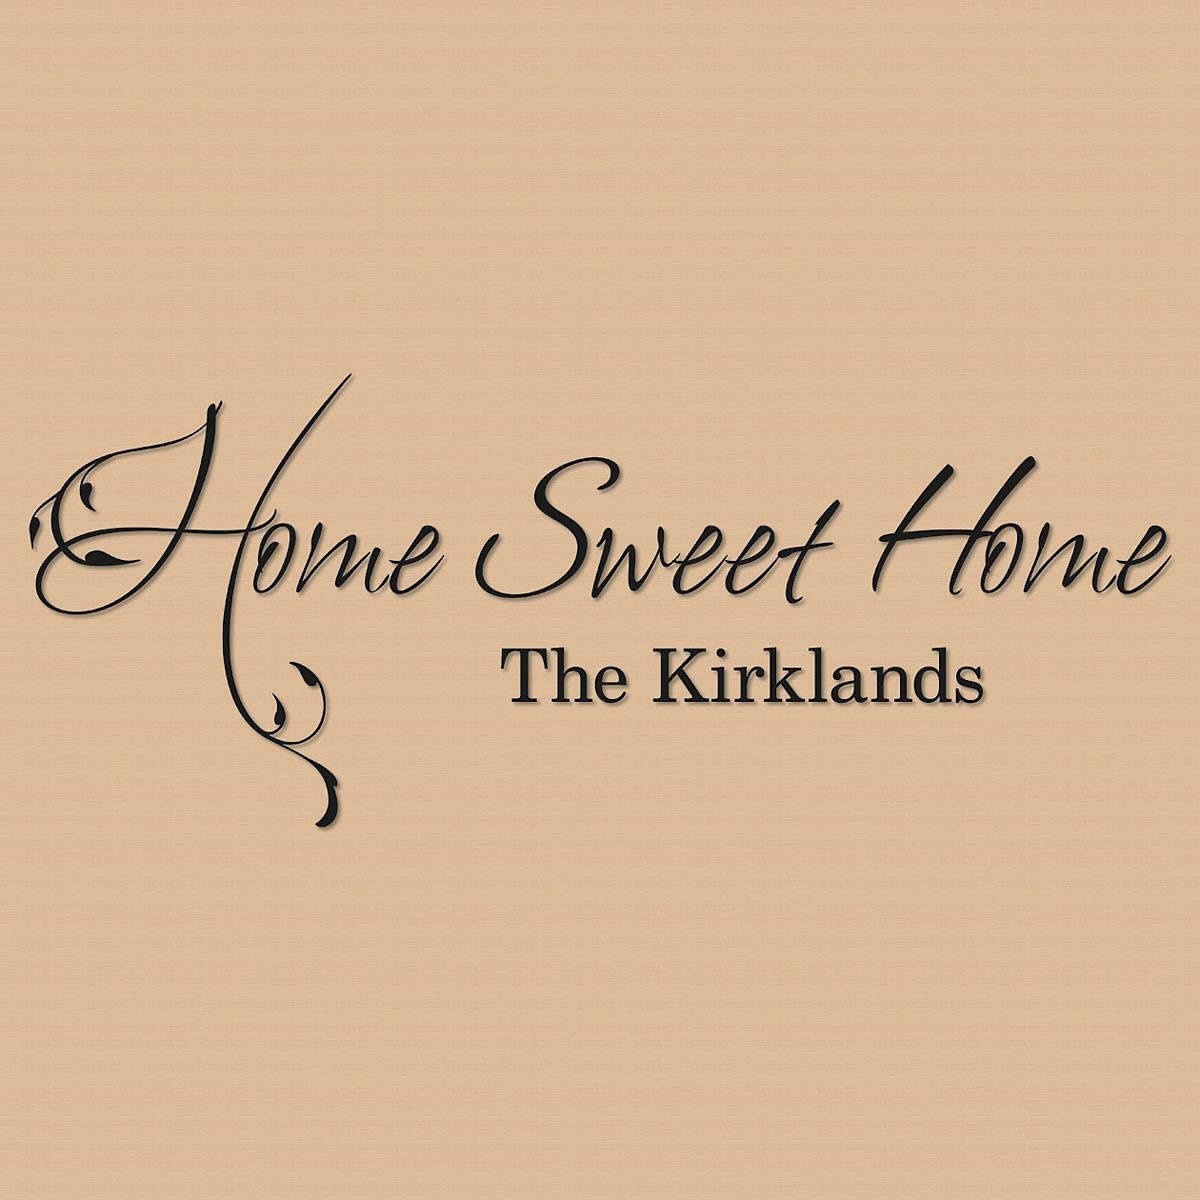 Home sweet home personalized vinyl wall art current catalog Home sweet home wall decor